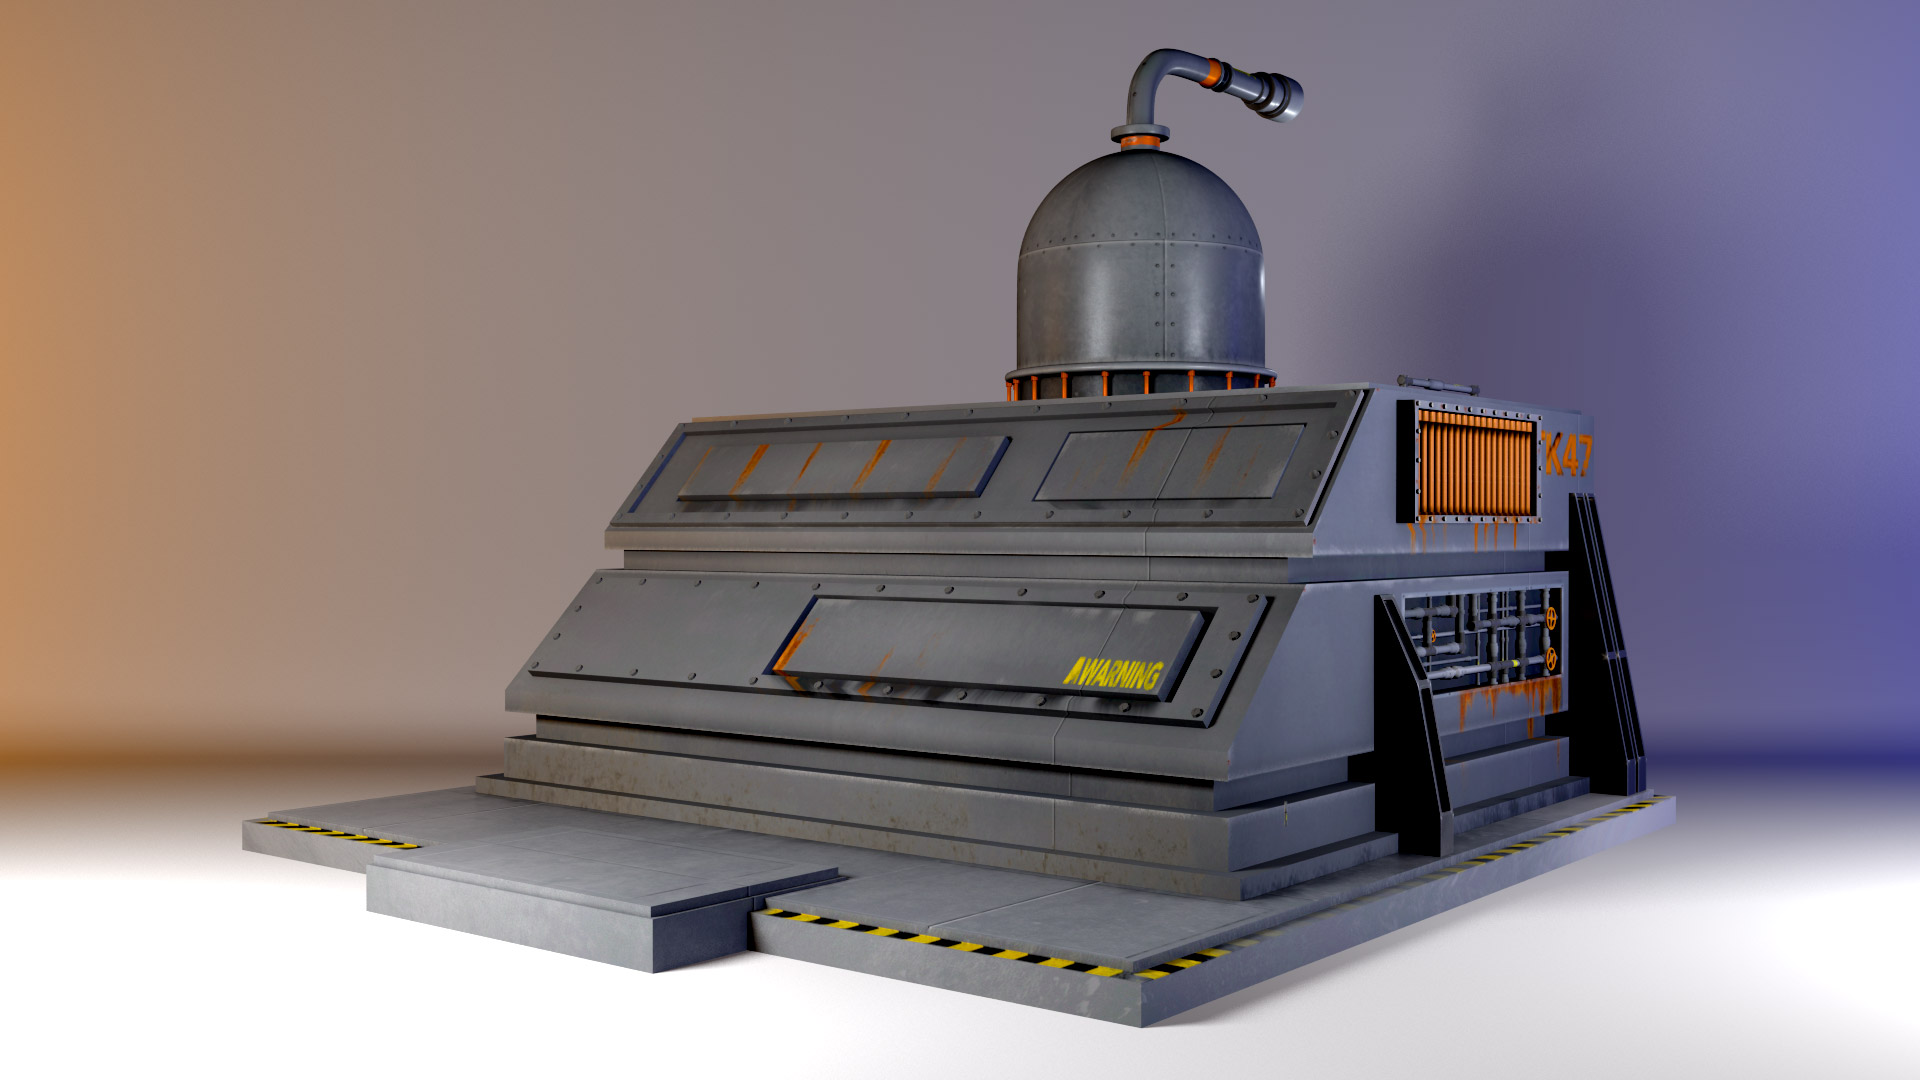 Pre-Processing Prop. Modeled in Maya. Rendered in Mental Ray.